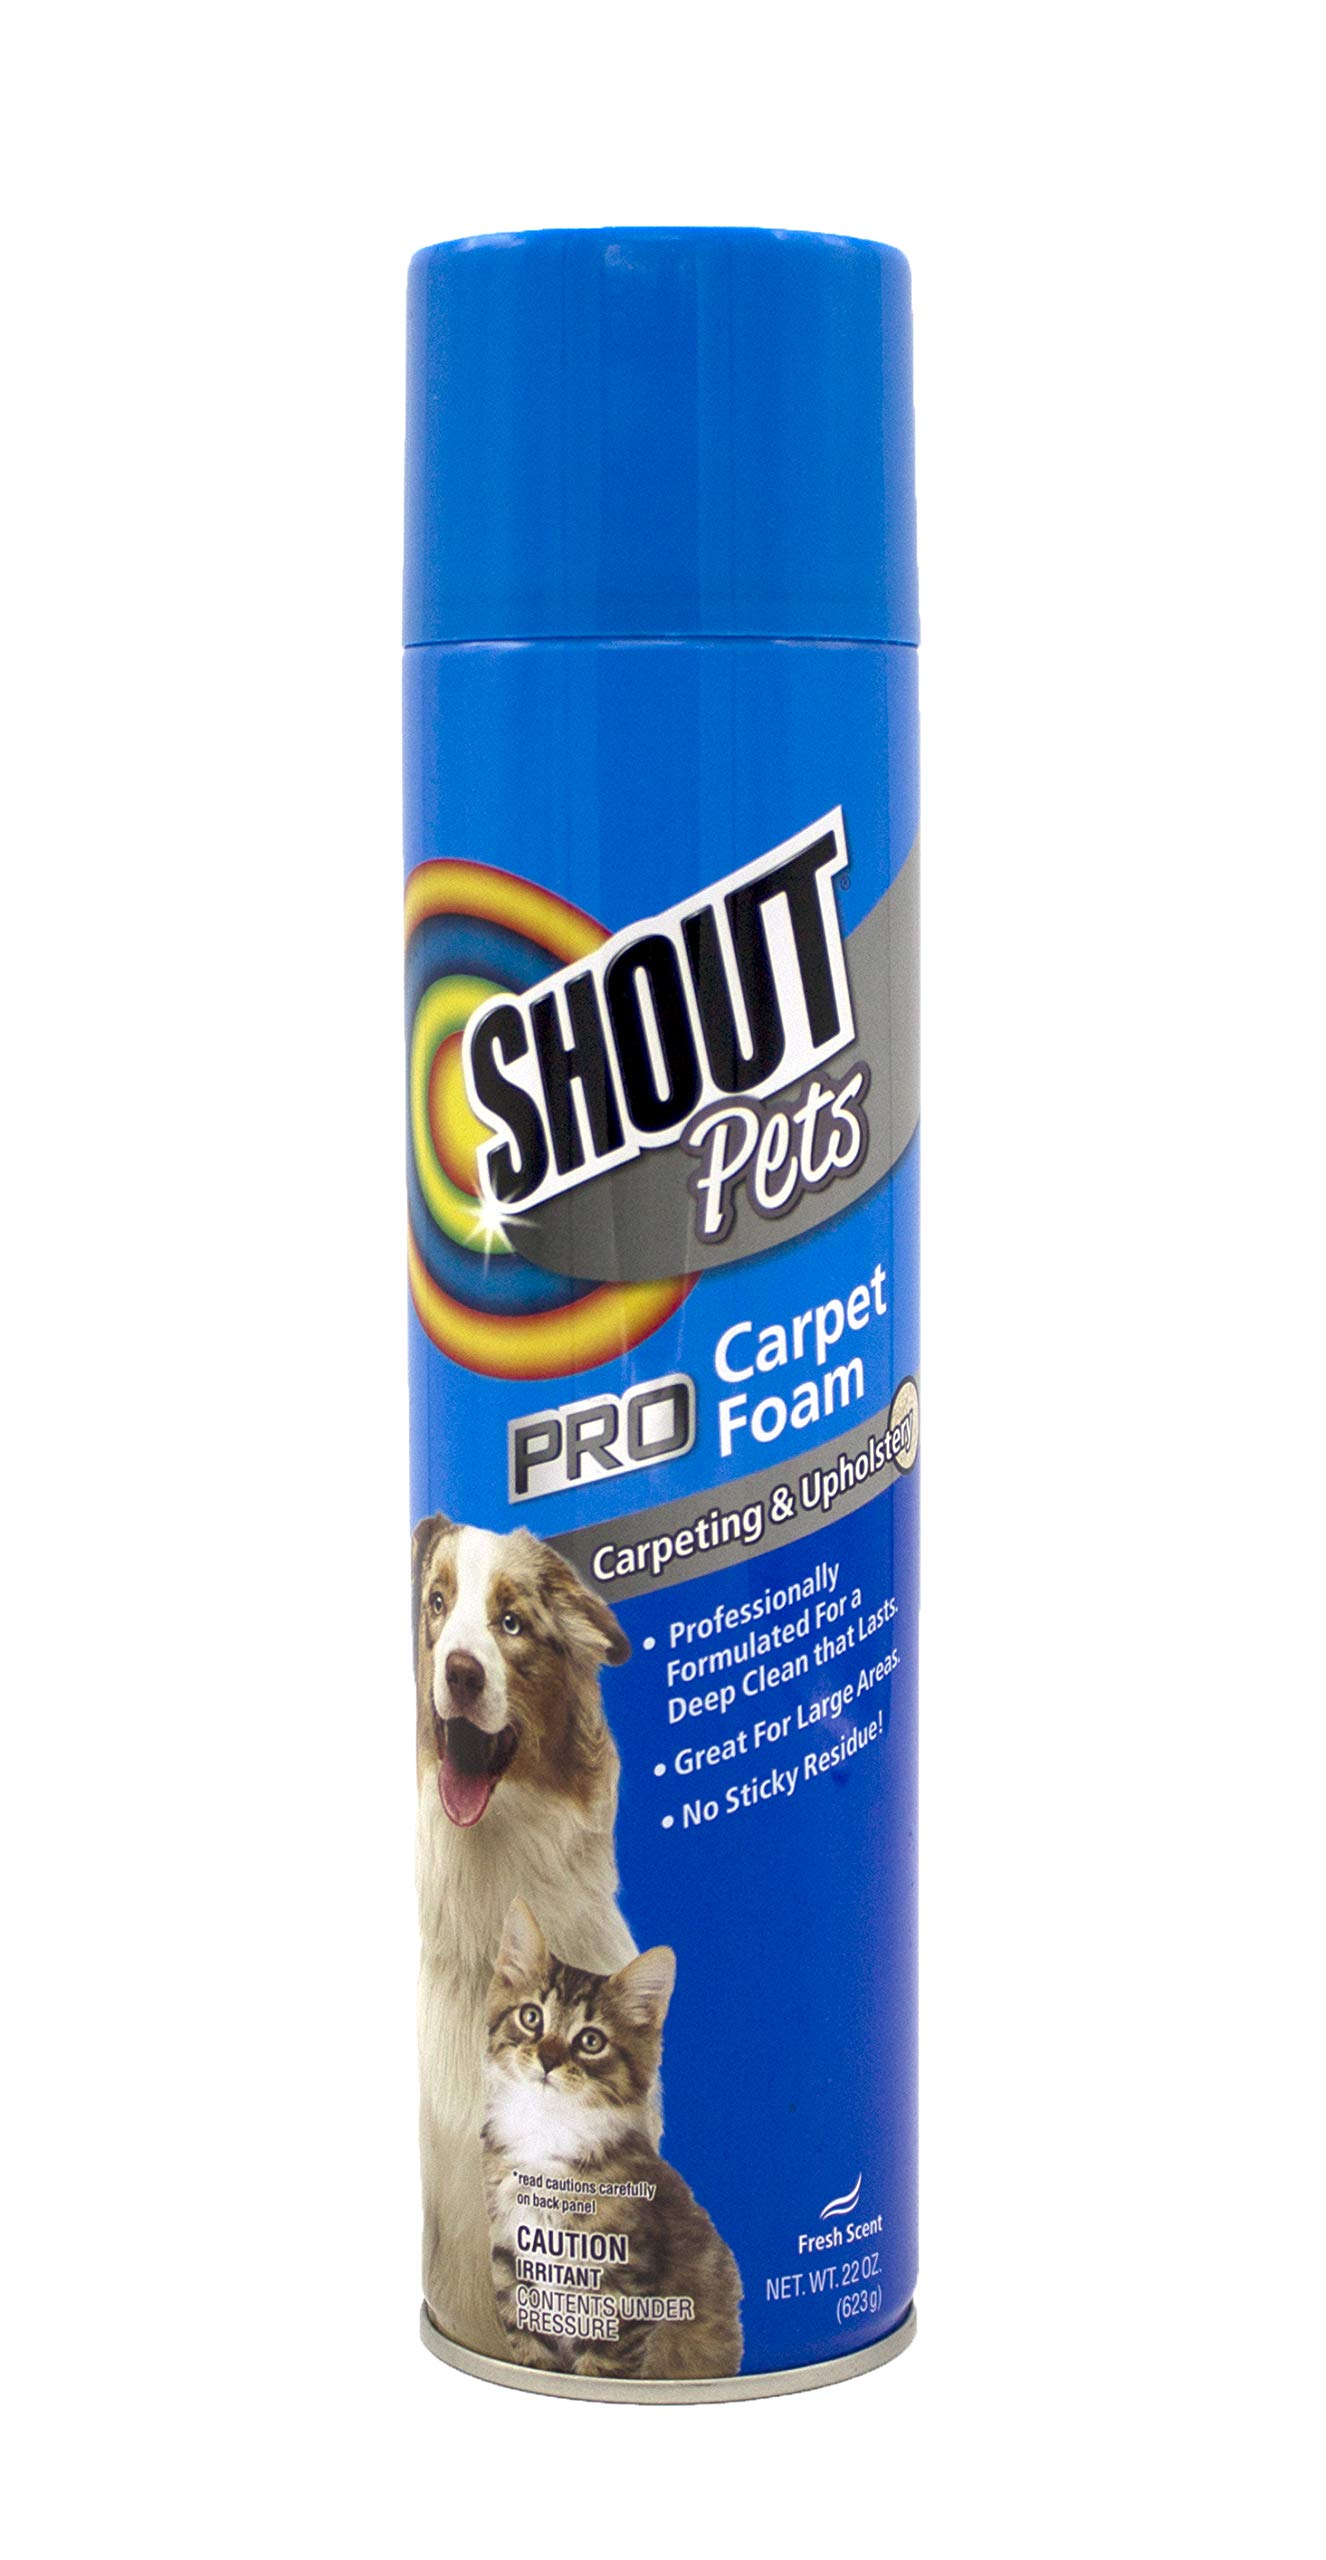 Shout for Pets Pro Strength Carpet Cleaning Foam | Carpet Cleaner Foam and Stain Remover in Fresh Scent, 22 Ounces